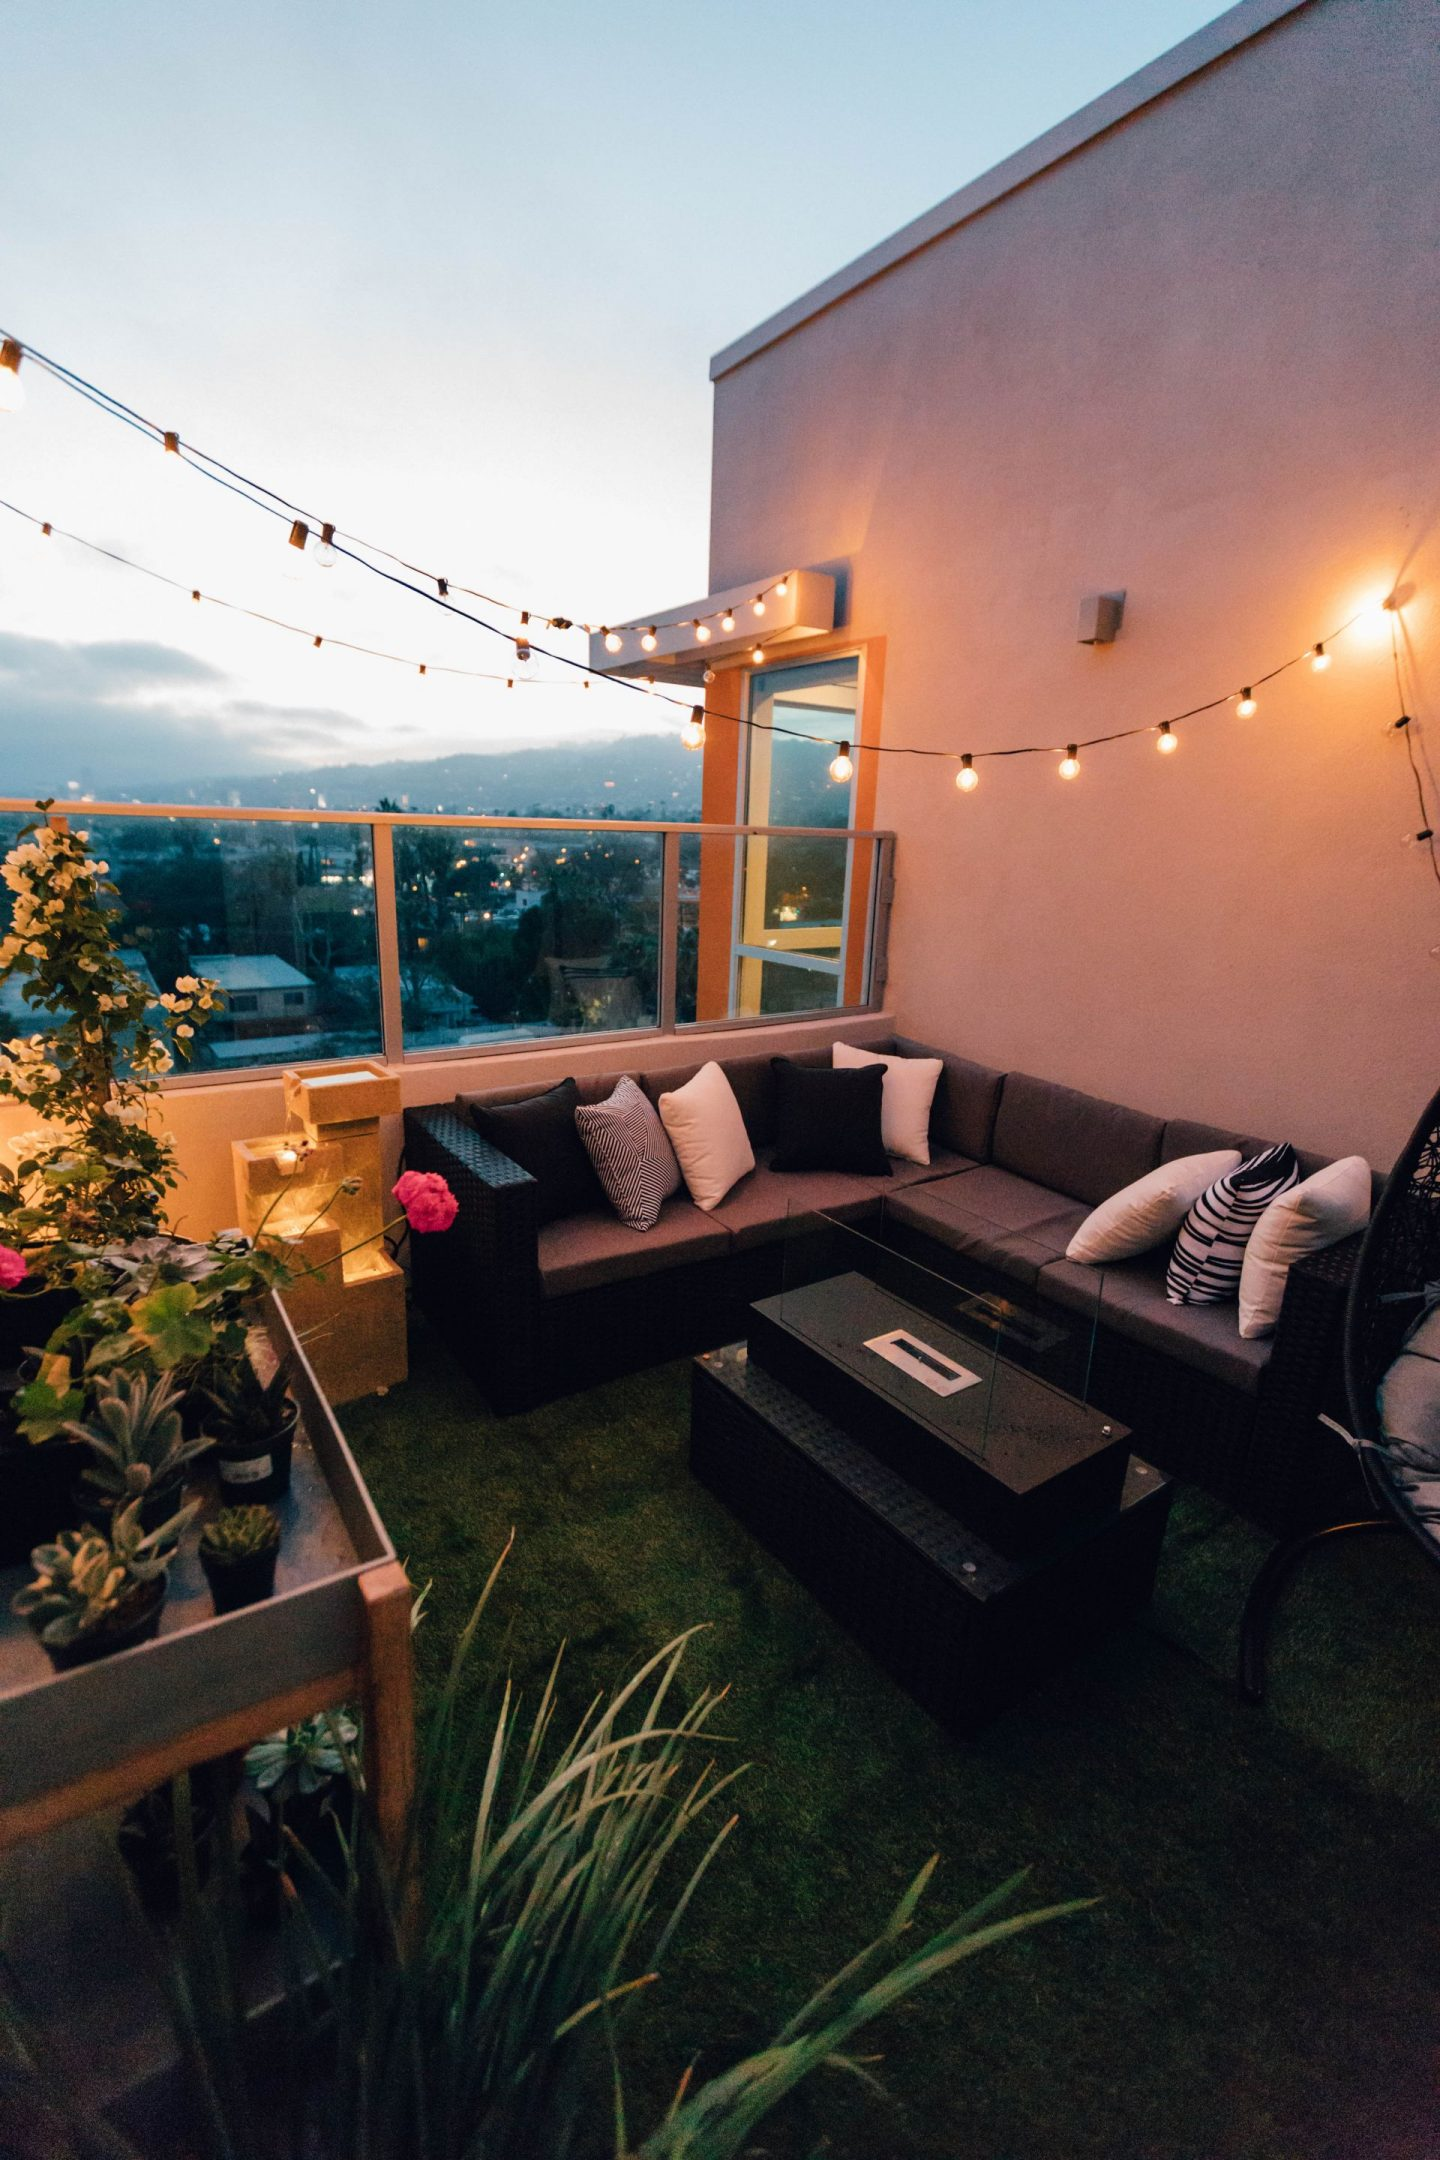 , Real or Artificial Grass: Which Is Best for Your Garden (and Life)?